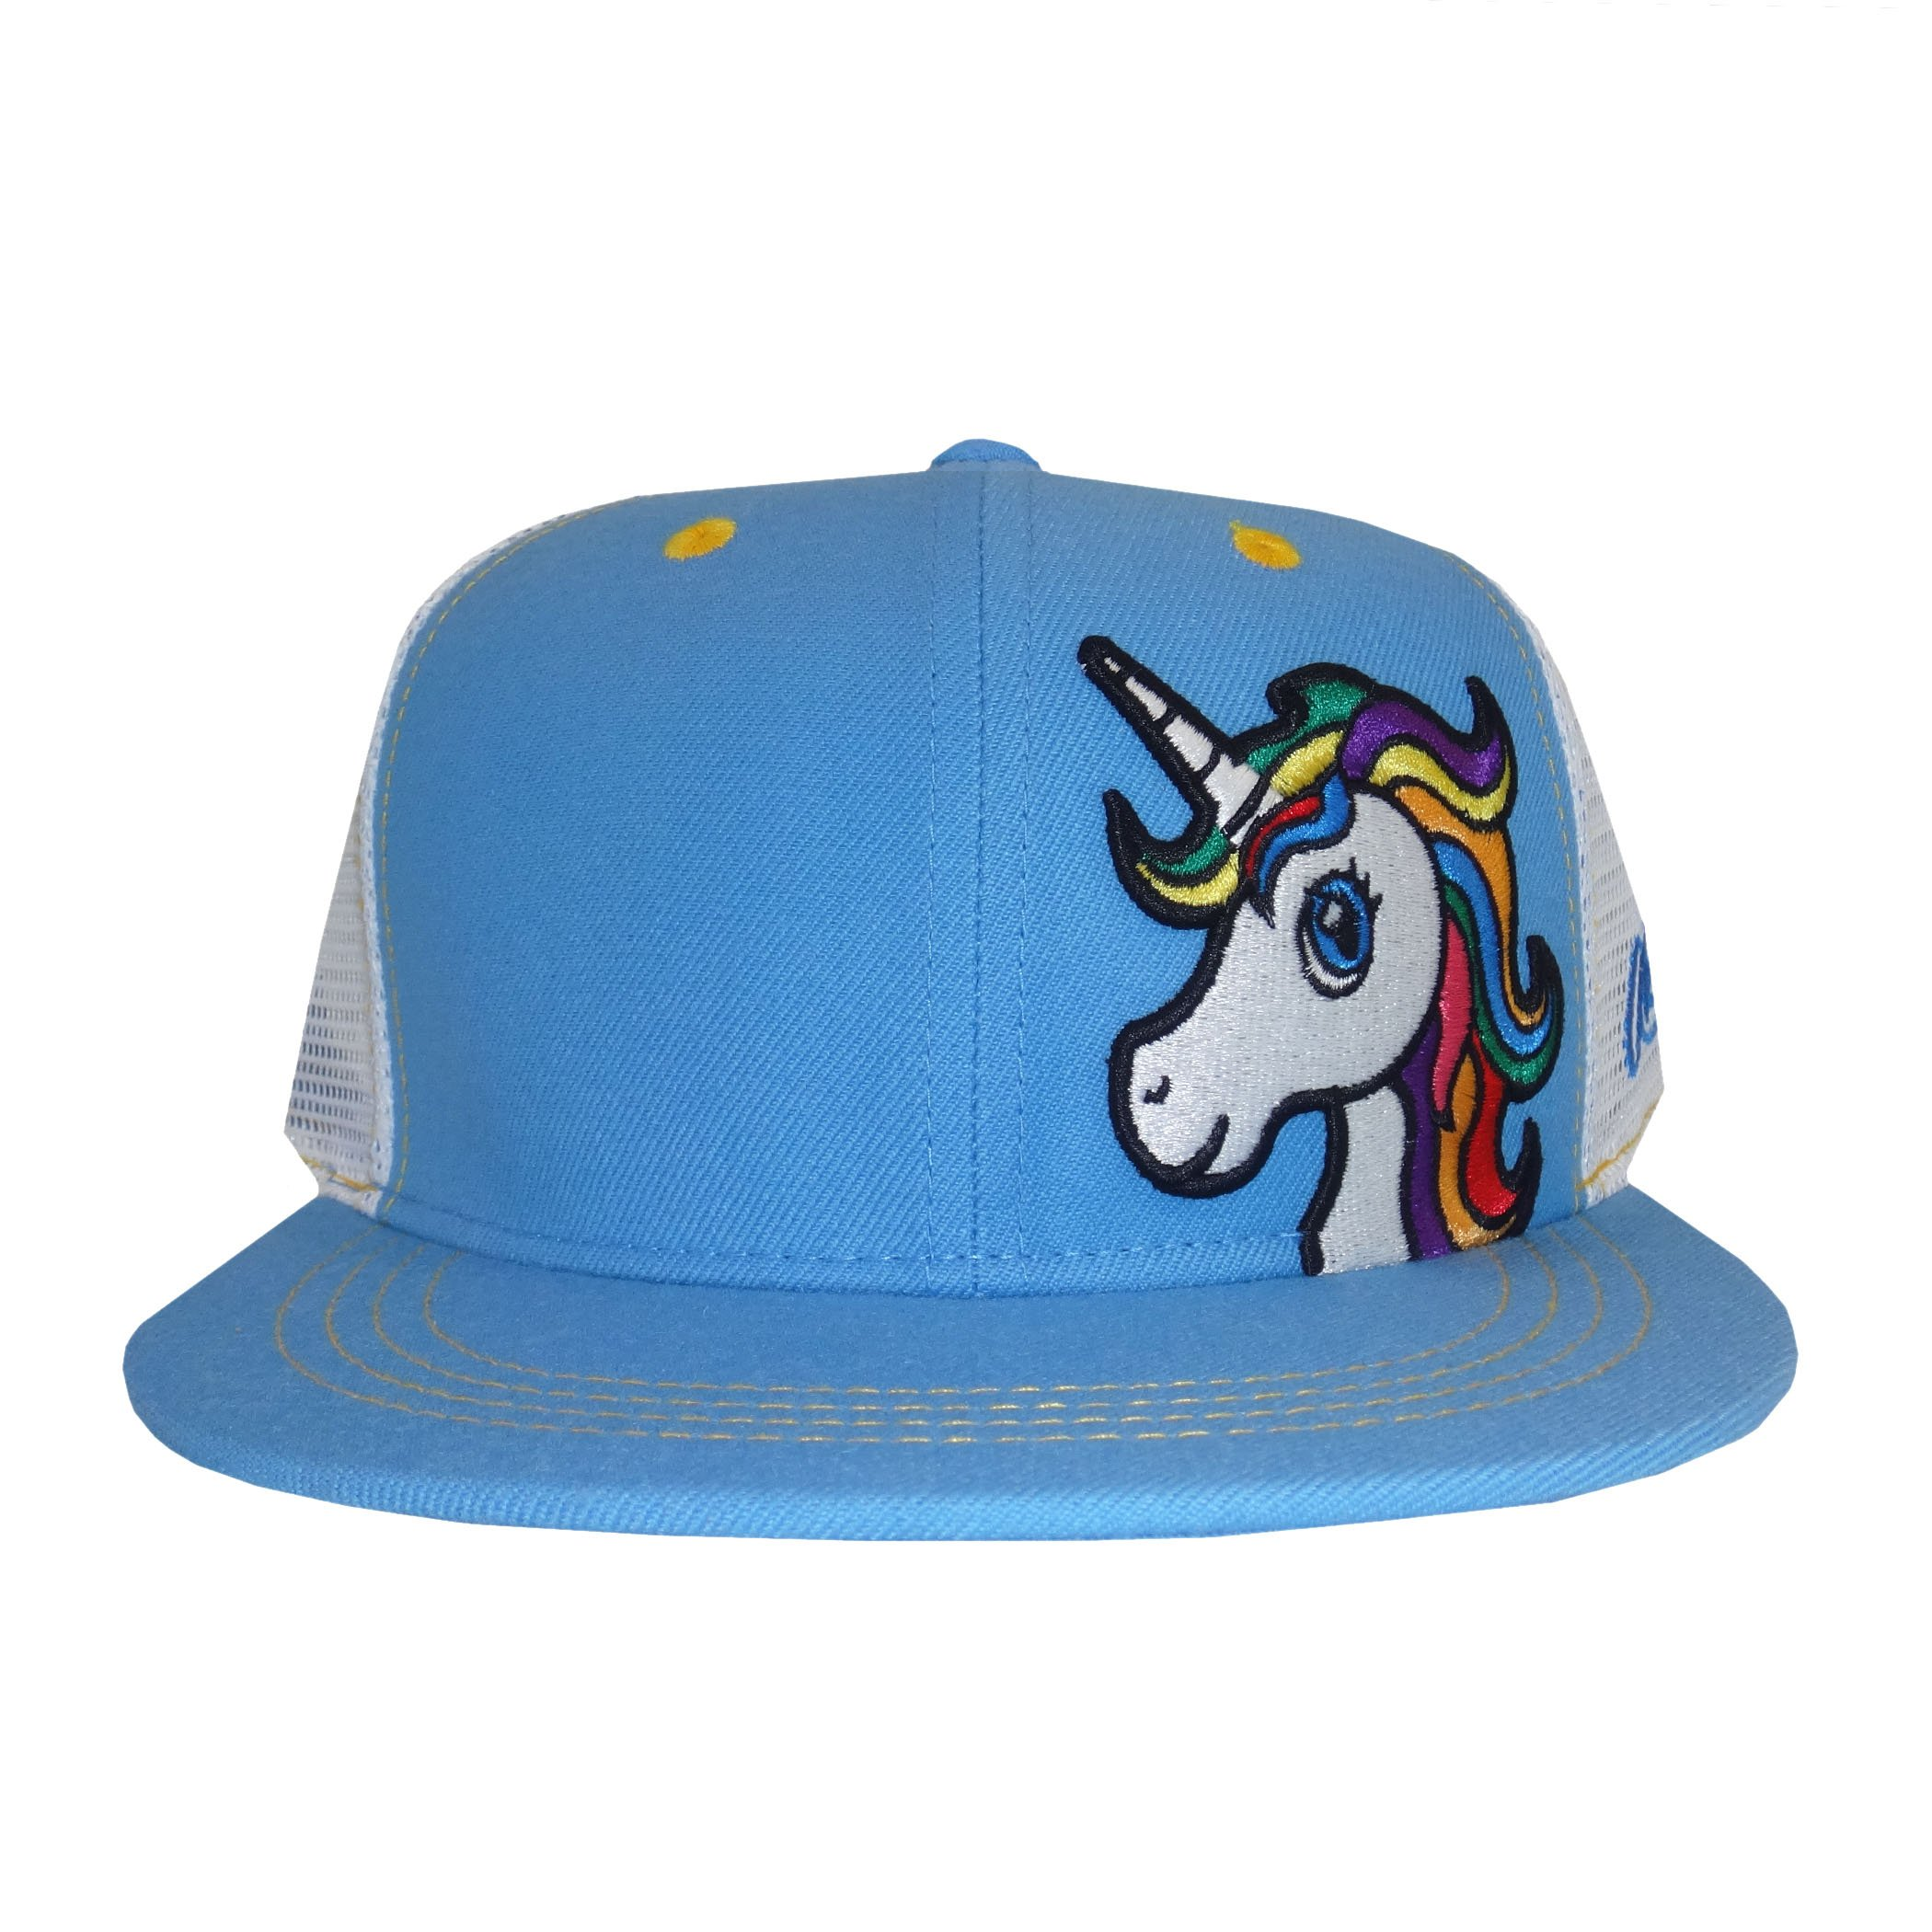 801bbbf7 Unicorn Trucker Hat Gourmet Flavored Popcorn | E.C. Pops - Historic ...